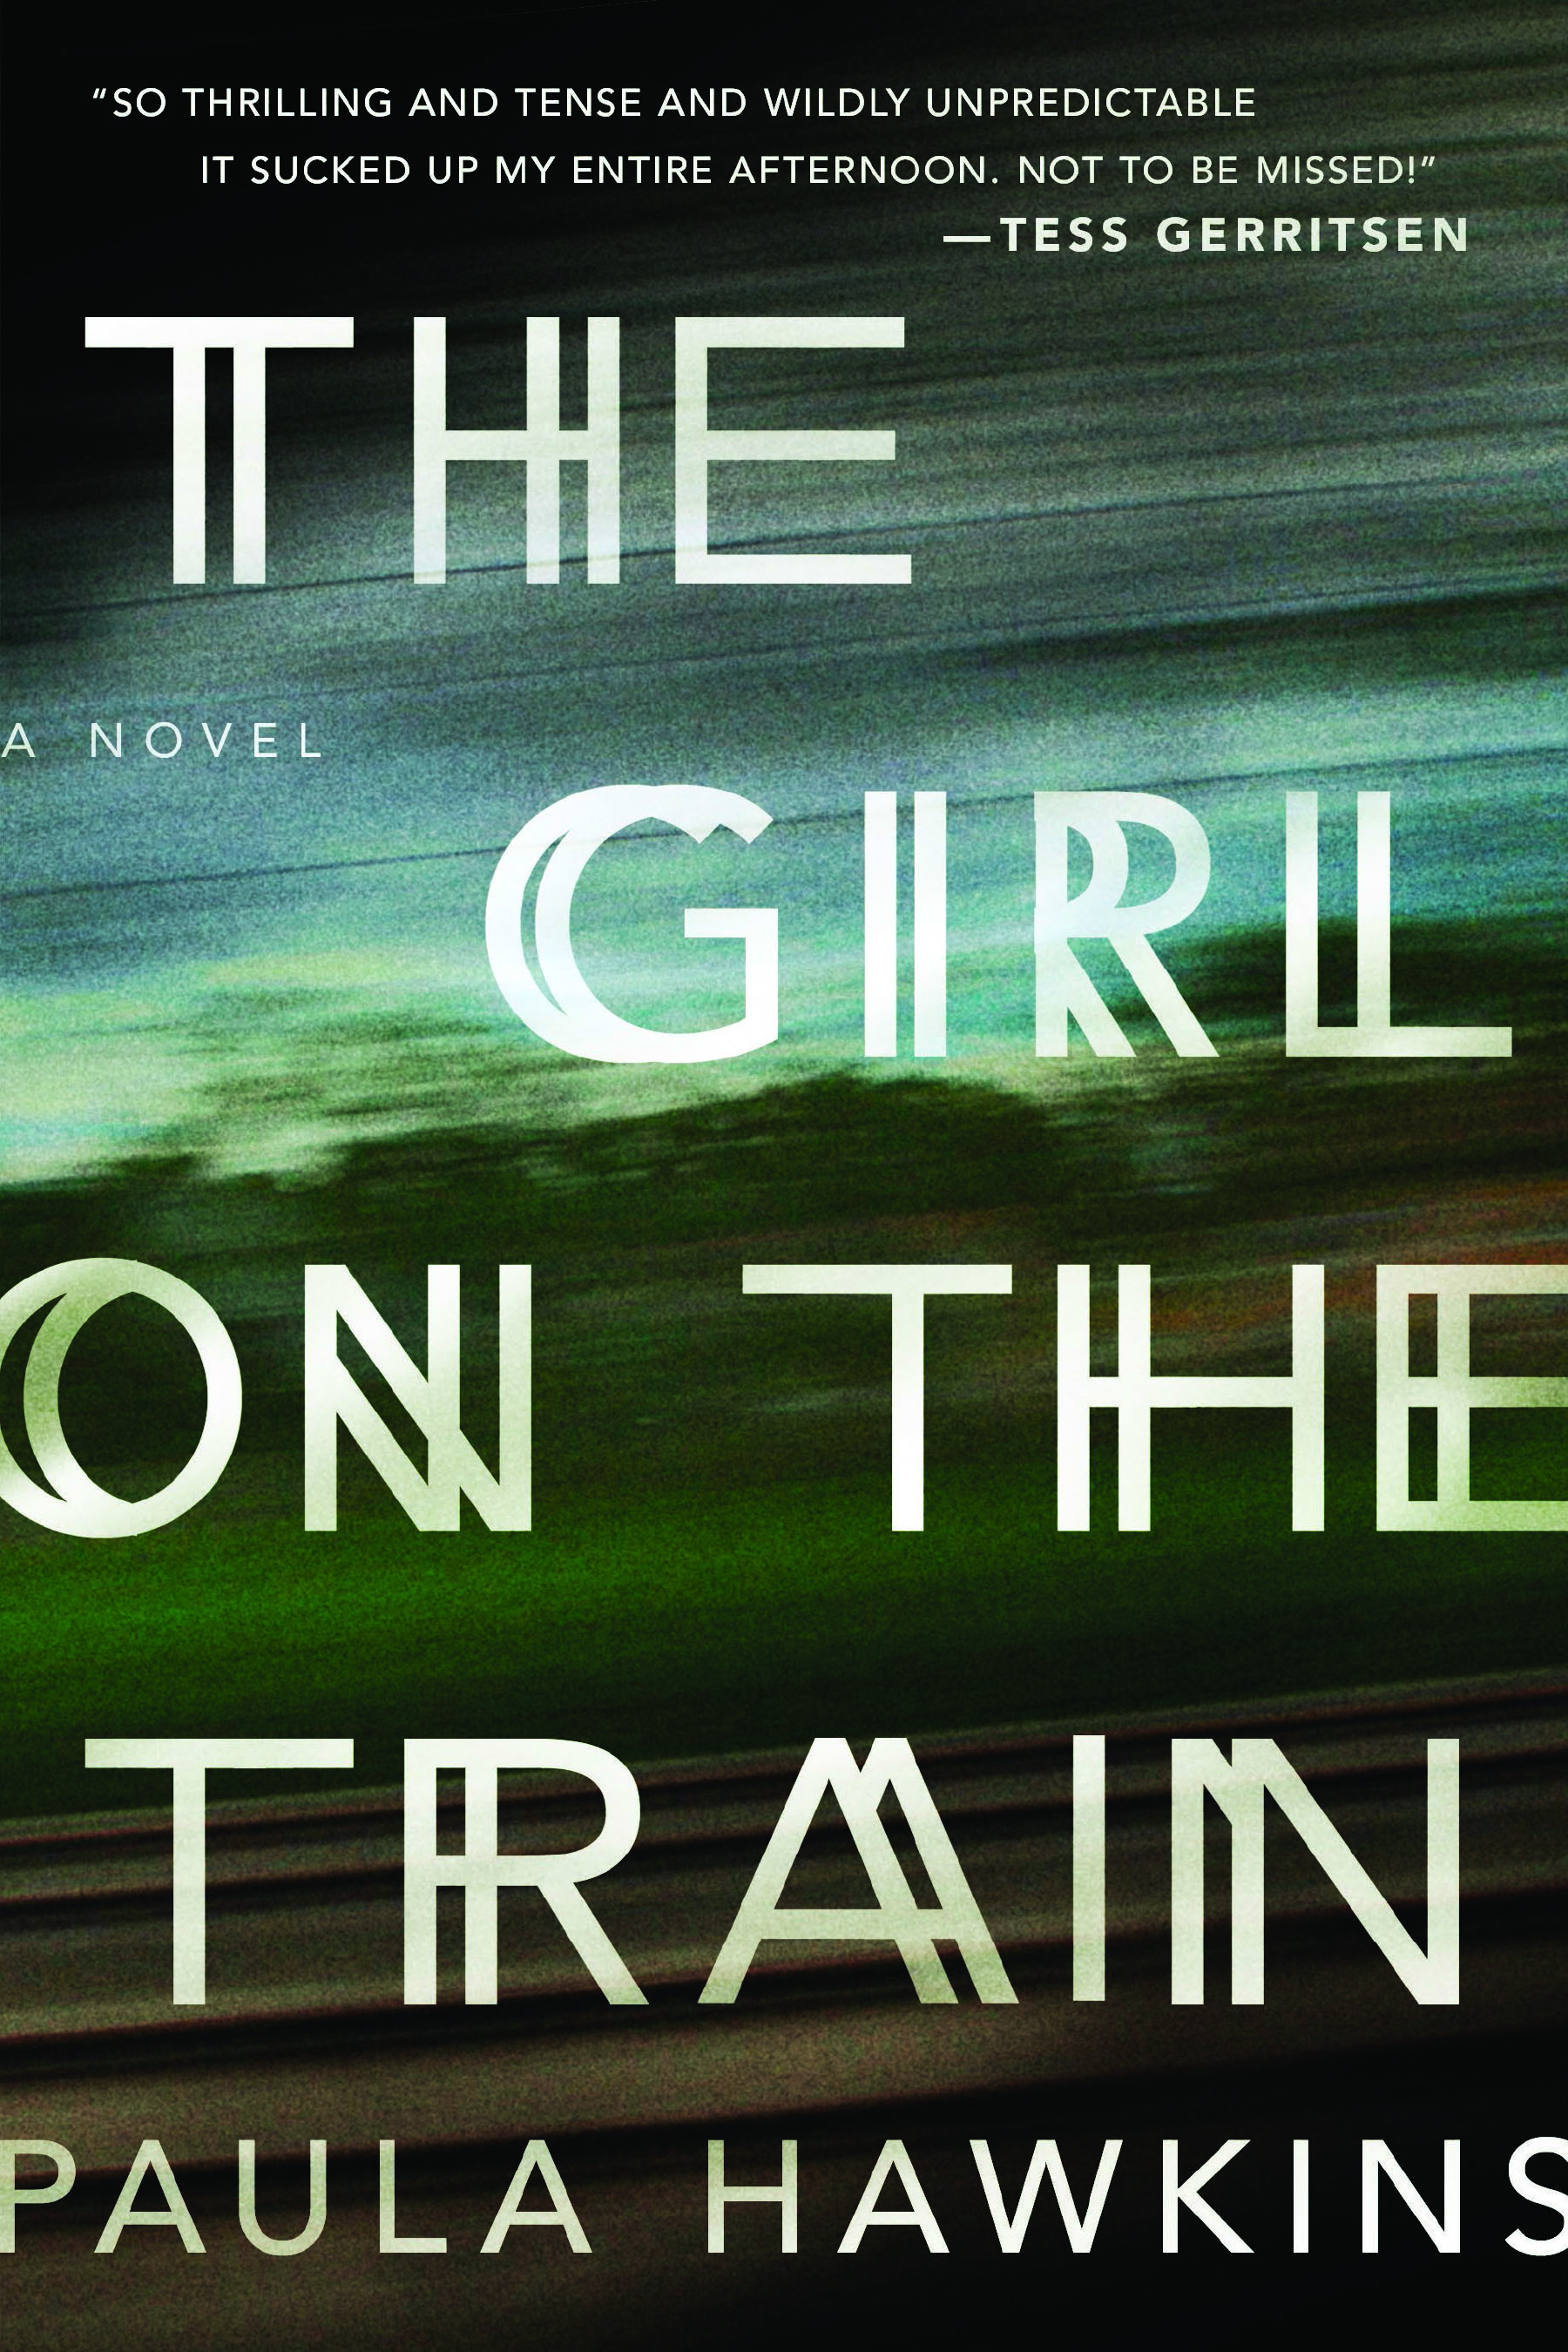 http://www.nothinganygood.com/wp-content/uploads/2016/10/original_The_Girl_on_the_Train.jpg